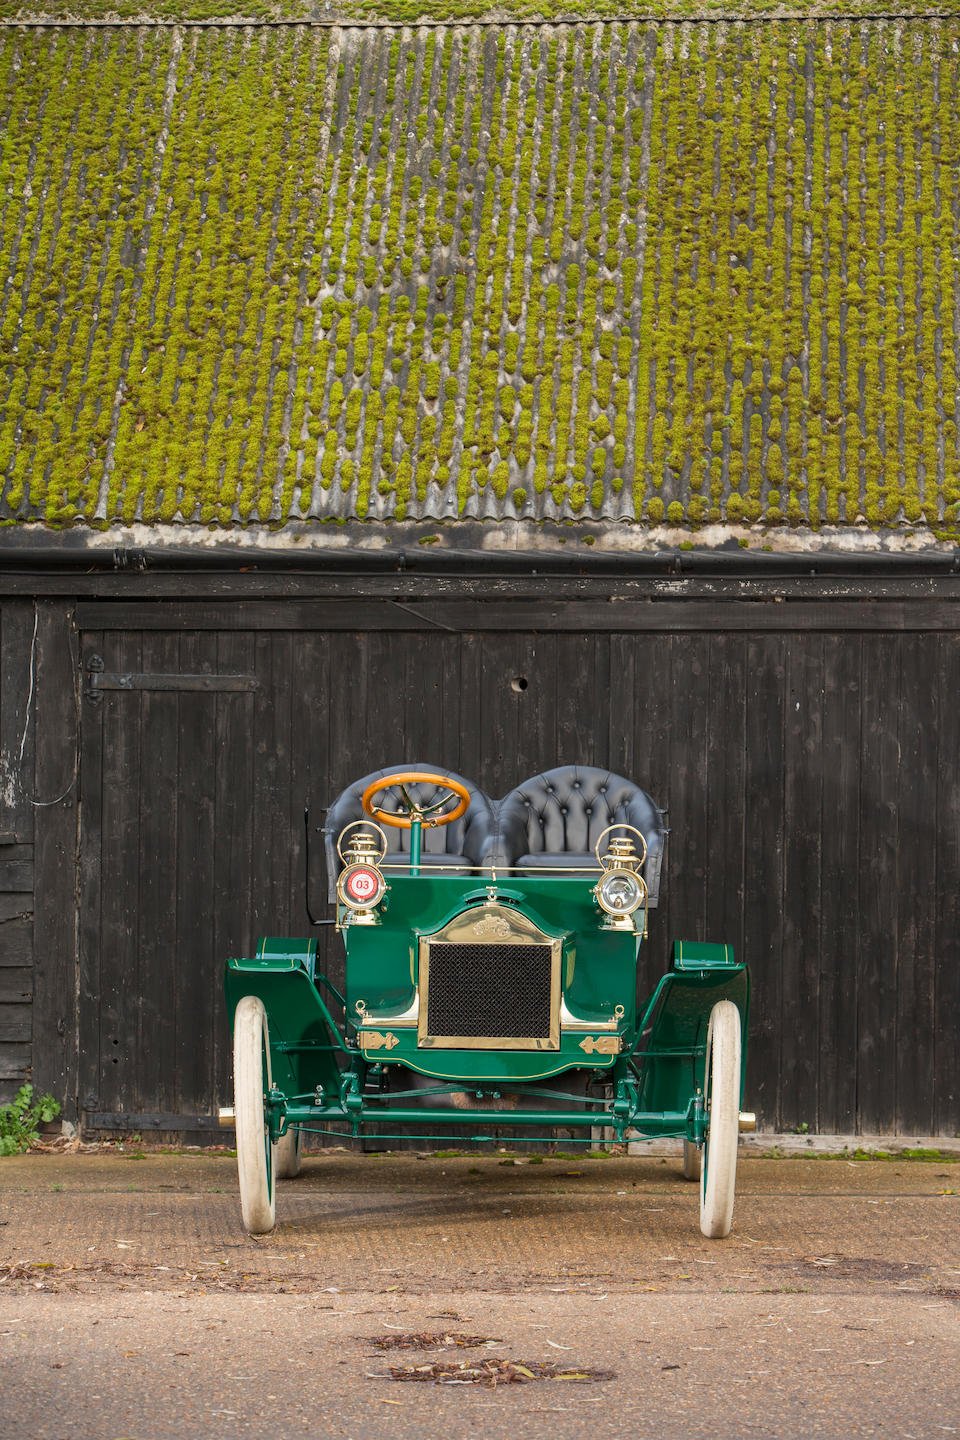 """<i>Formerly part of the General Motors Heritage Collection</i><br /><b>1904 OLDSMOBILE  MODEL N """"FRENCH FRONT"""" TOURING RUNABOUT  </b><br />Engine no. 31285"""